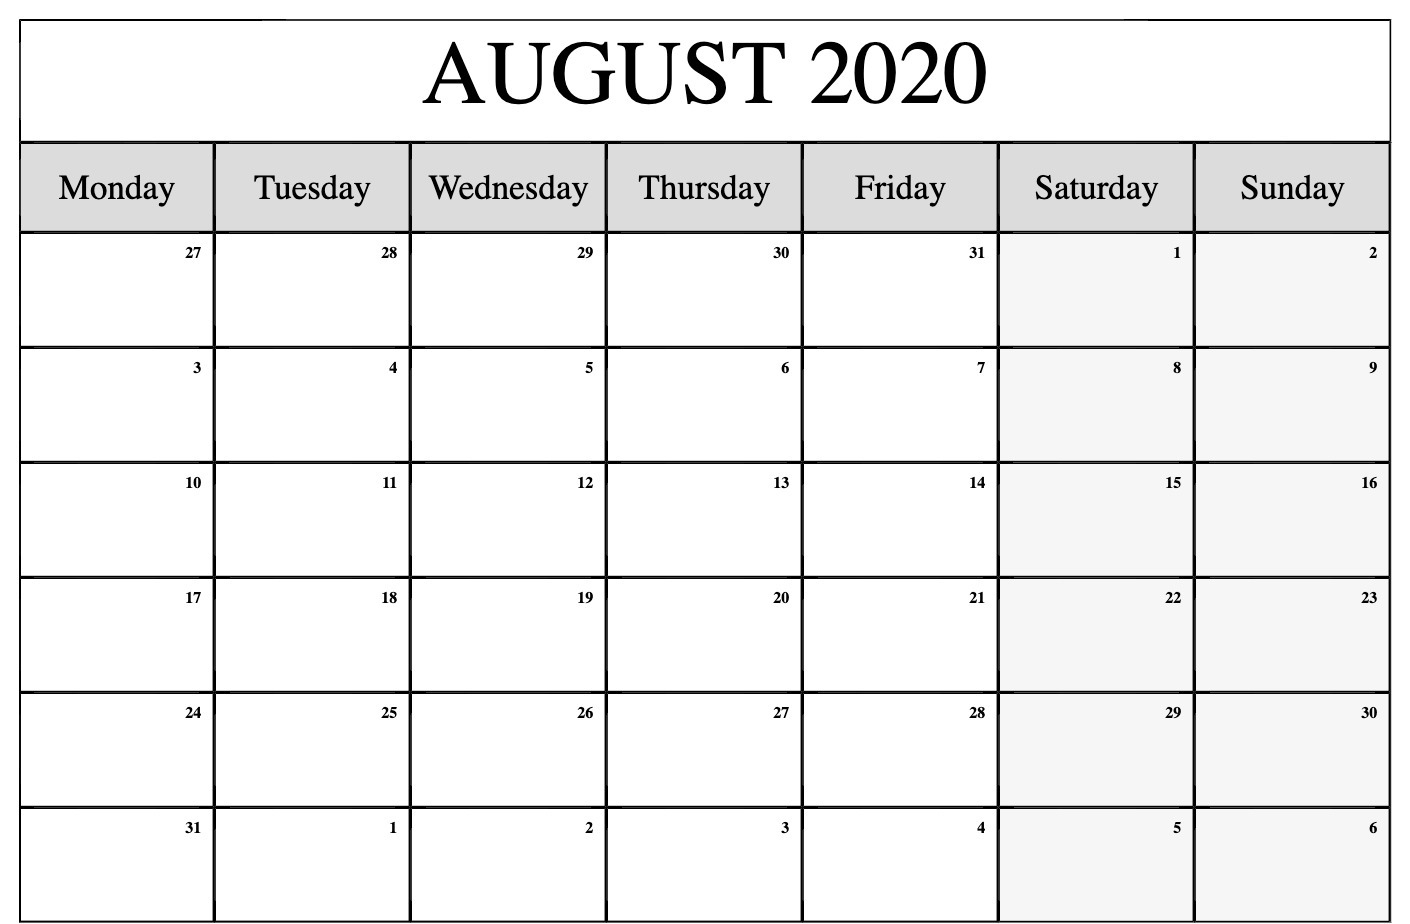 August 2020 Calendar Printable Template With Holidays